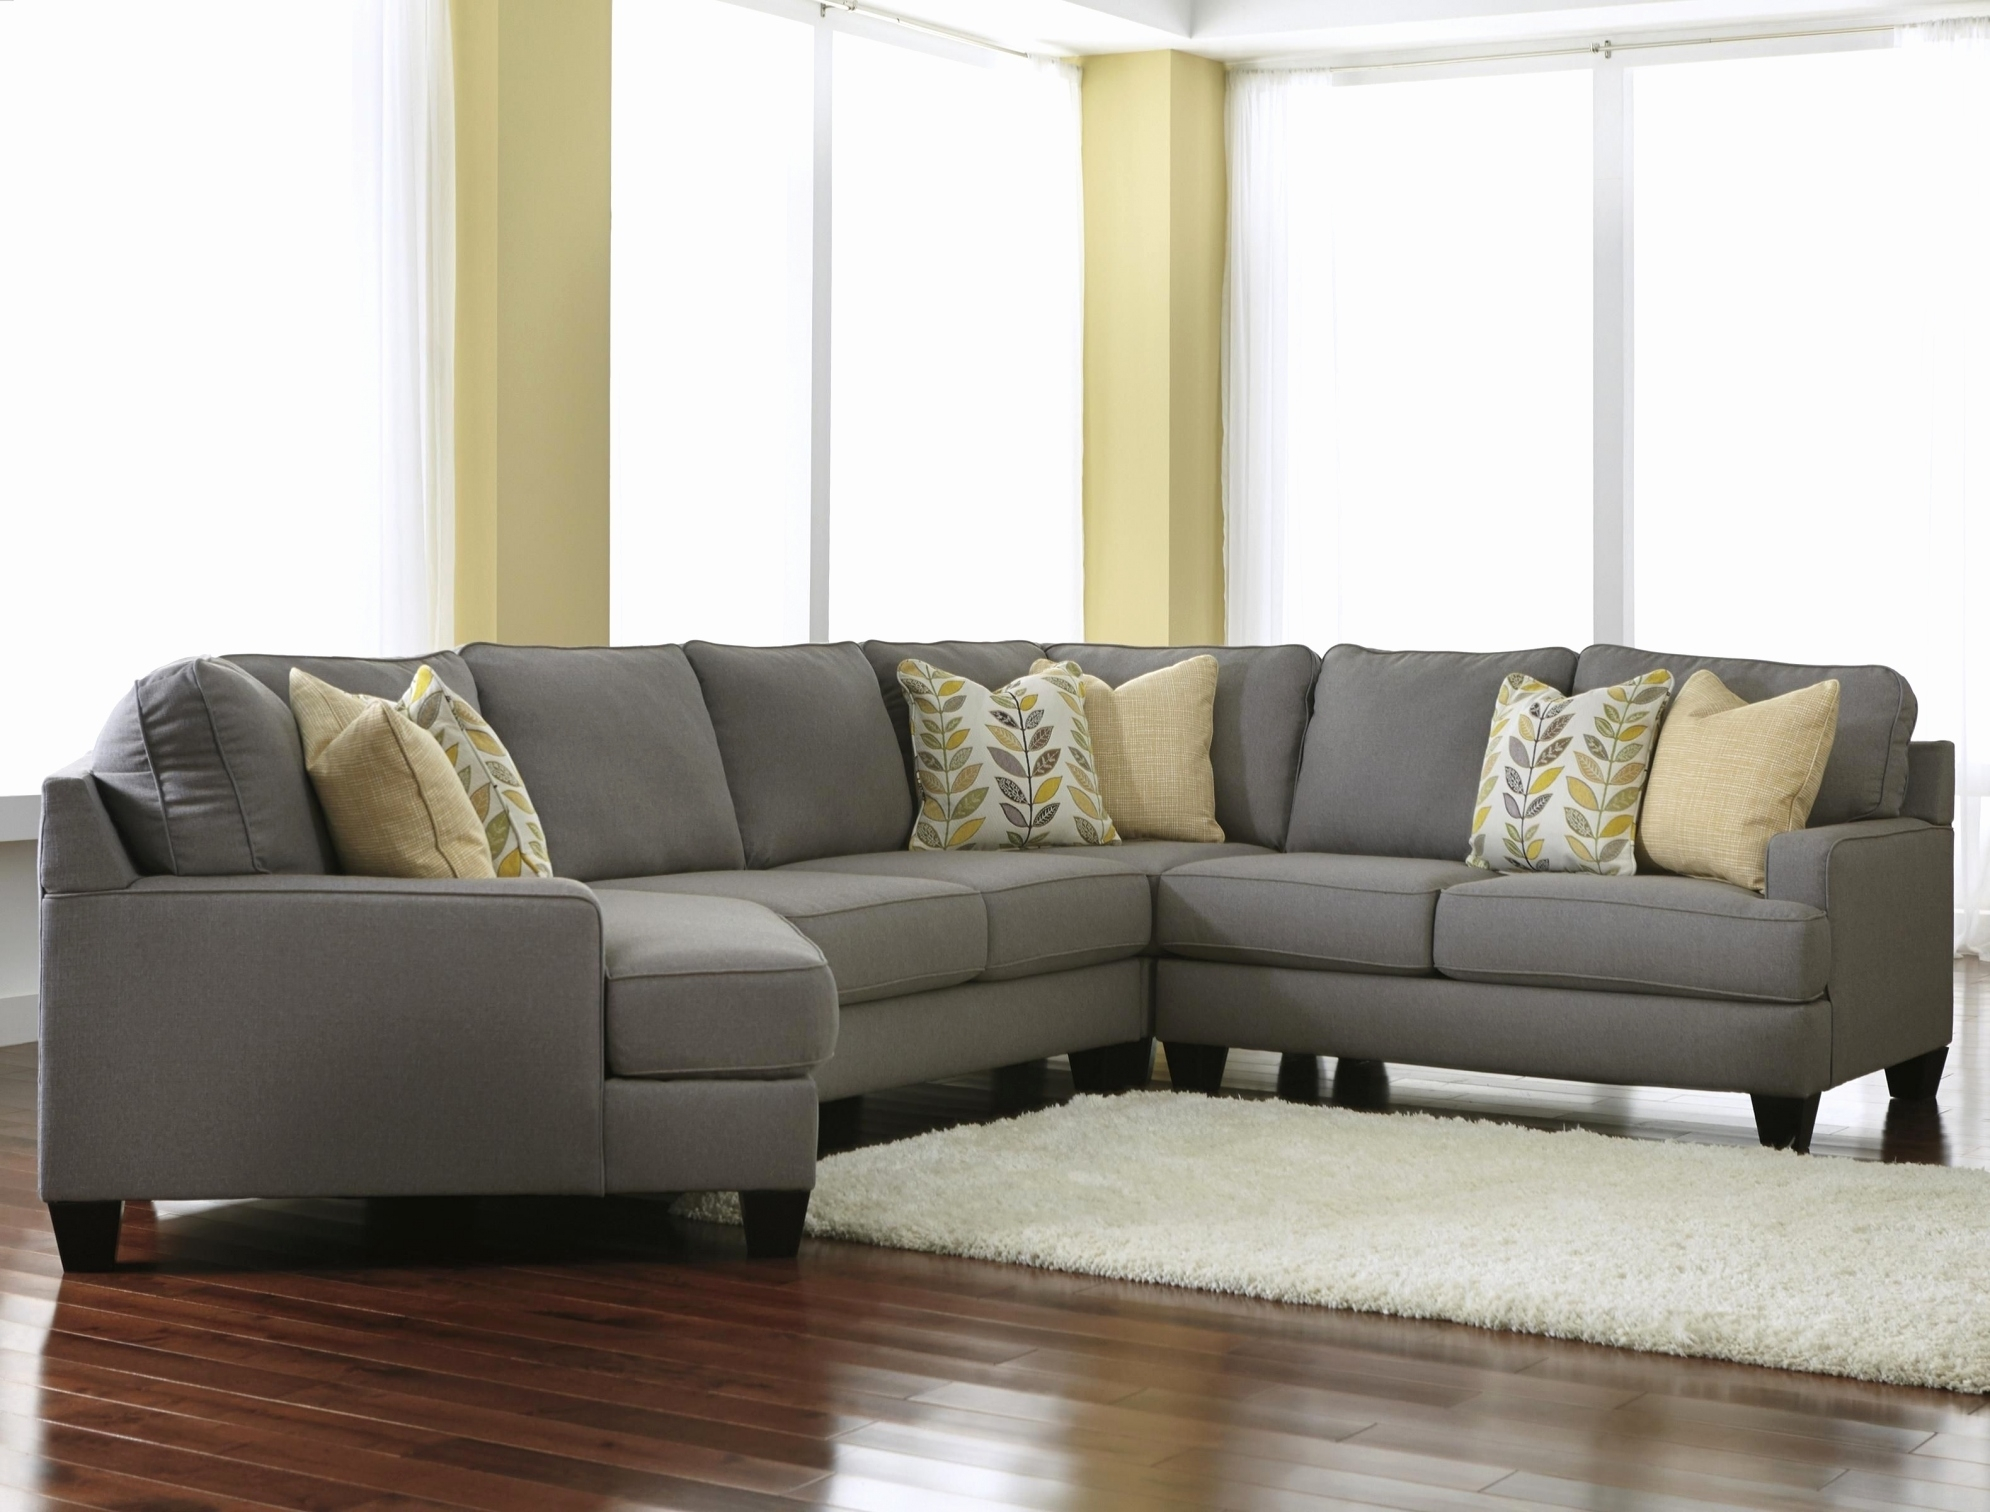 32 Lovely Sectional Sofas Clearance Photos - Sectional Sofa Design Ideas with regard to Des Moines Ia Sectional Sofas